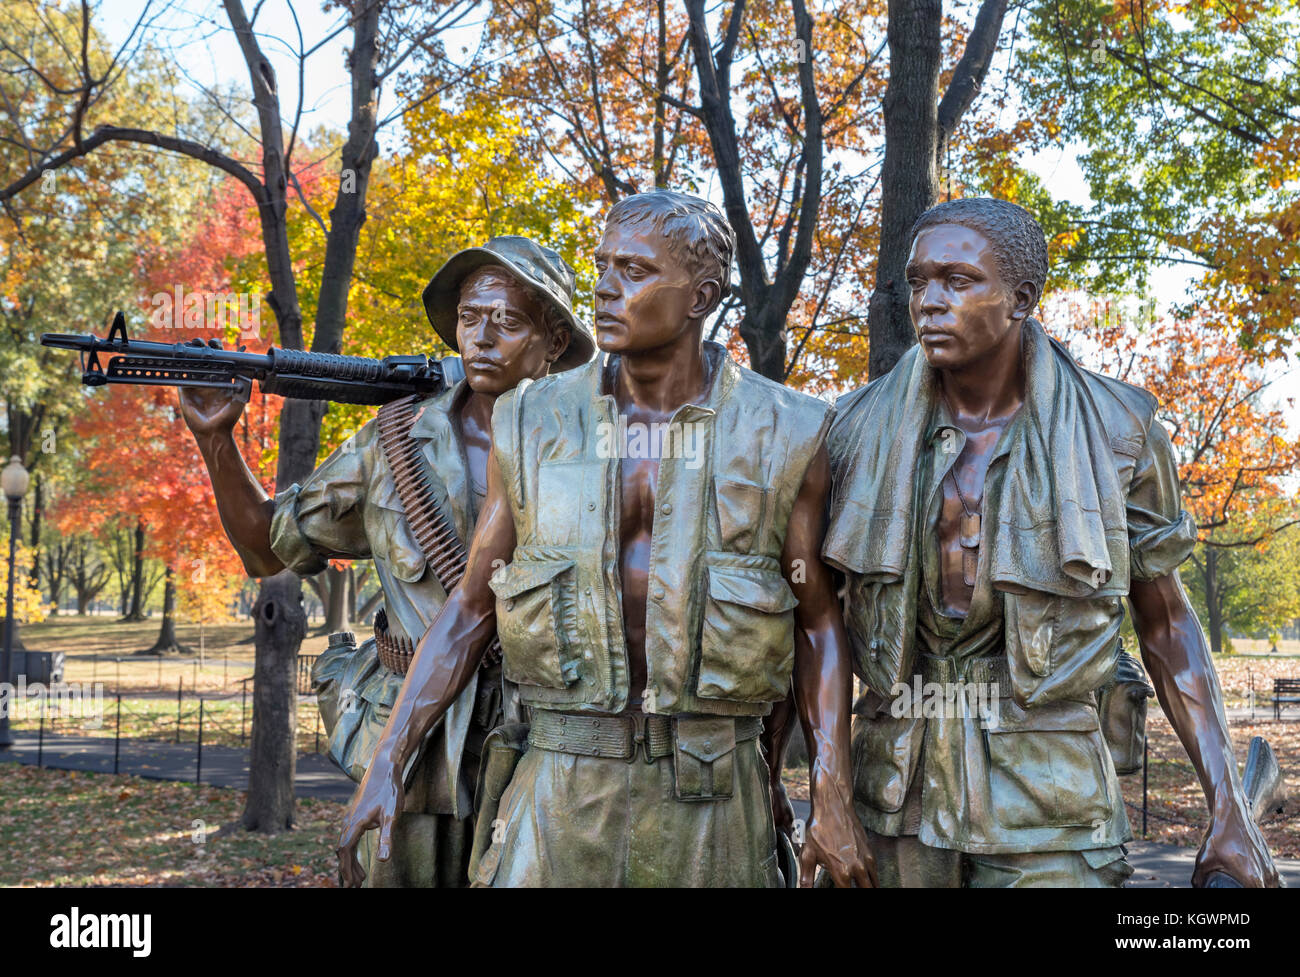 Frederick Hart's statue entitled the The Three Servicemen (The Three Soldiers), Vietnam Veterans Memorial, Washington - Stock Image